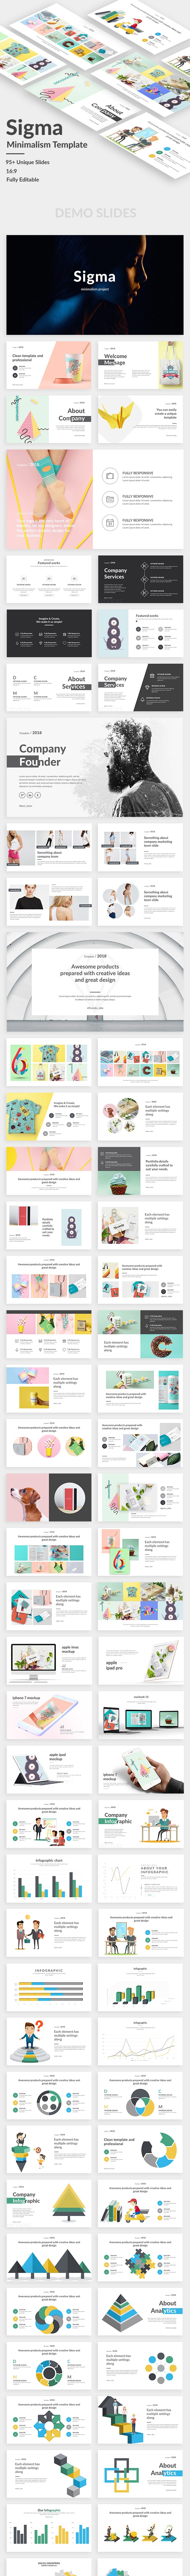 Sigma Minimalism Project Google Slide Template - Google Slides Presentation Templates